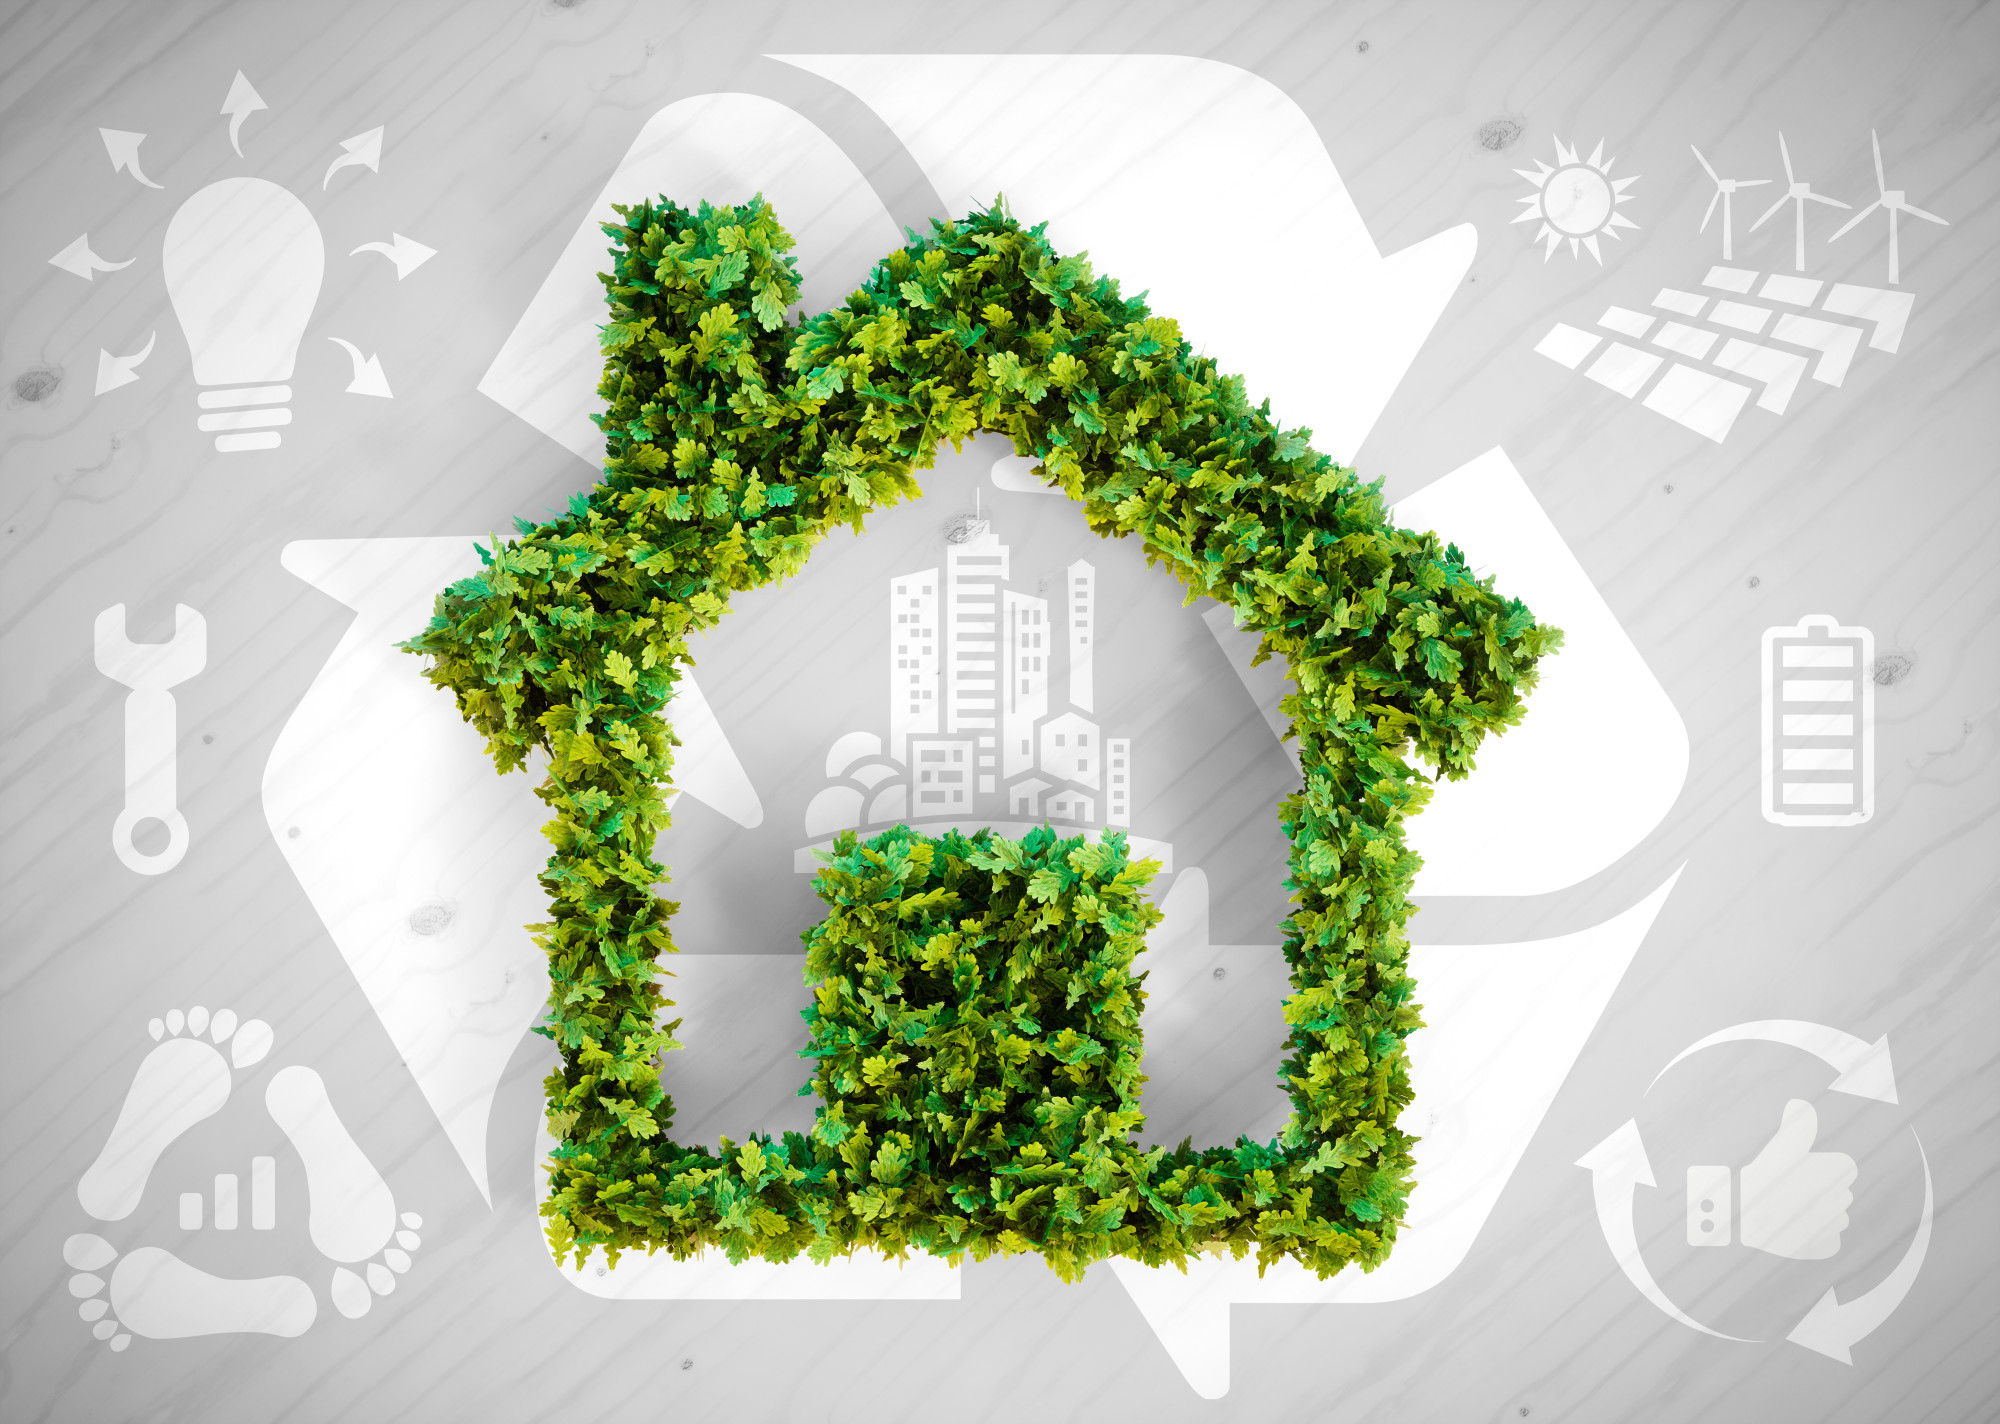 5 Ways to Improve Your Home's Sustainability